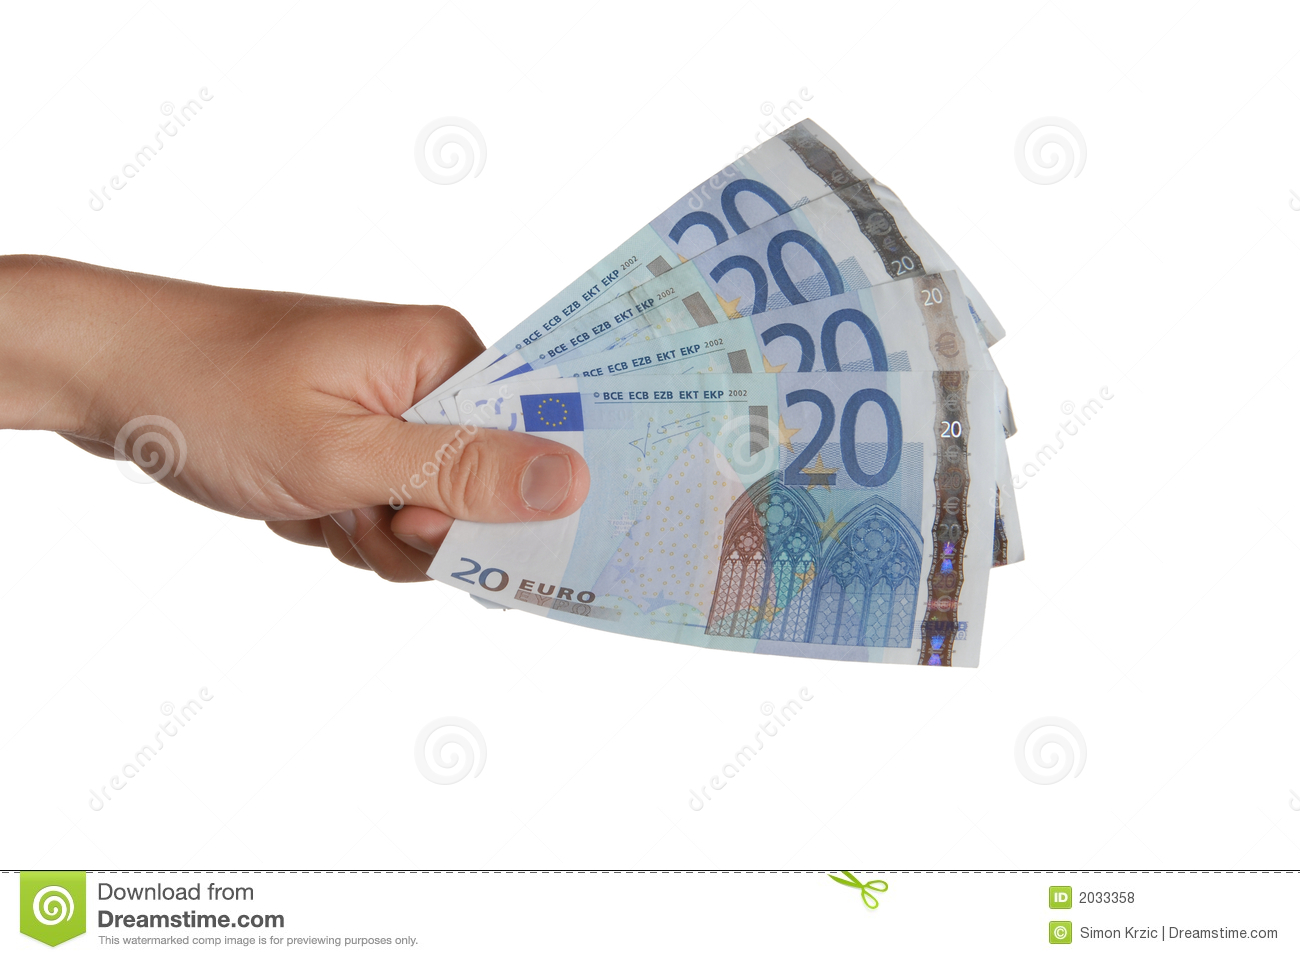 http://thumbs.dreamstime.com/z/euro-notes-2033358.jpg